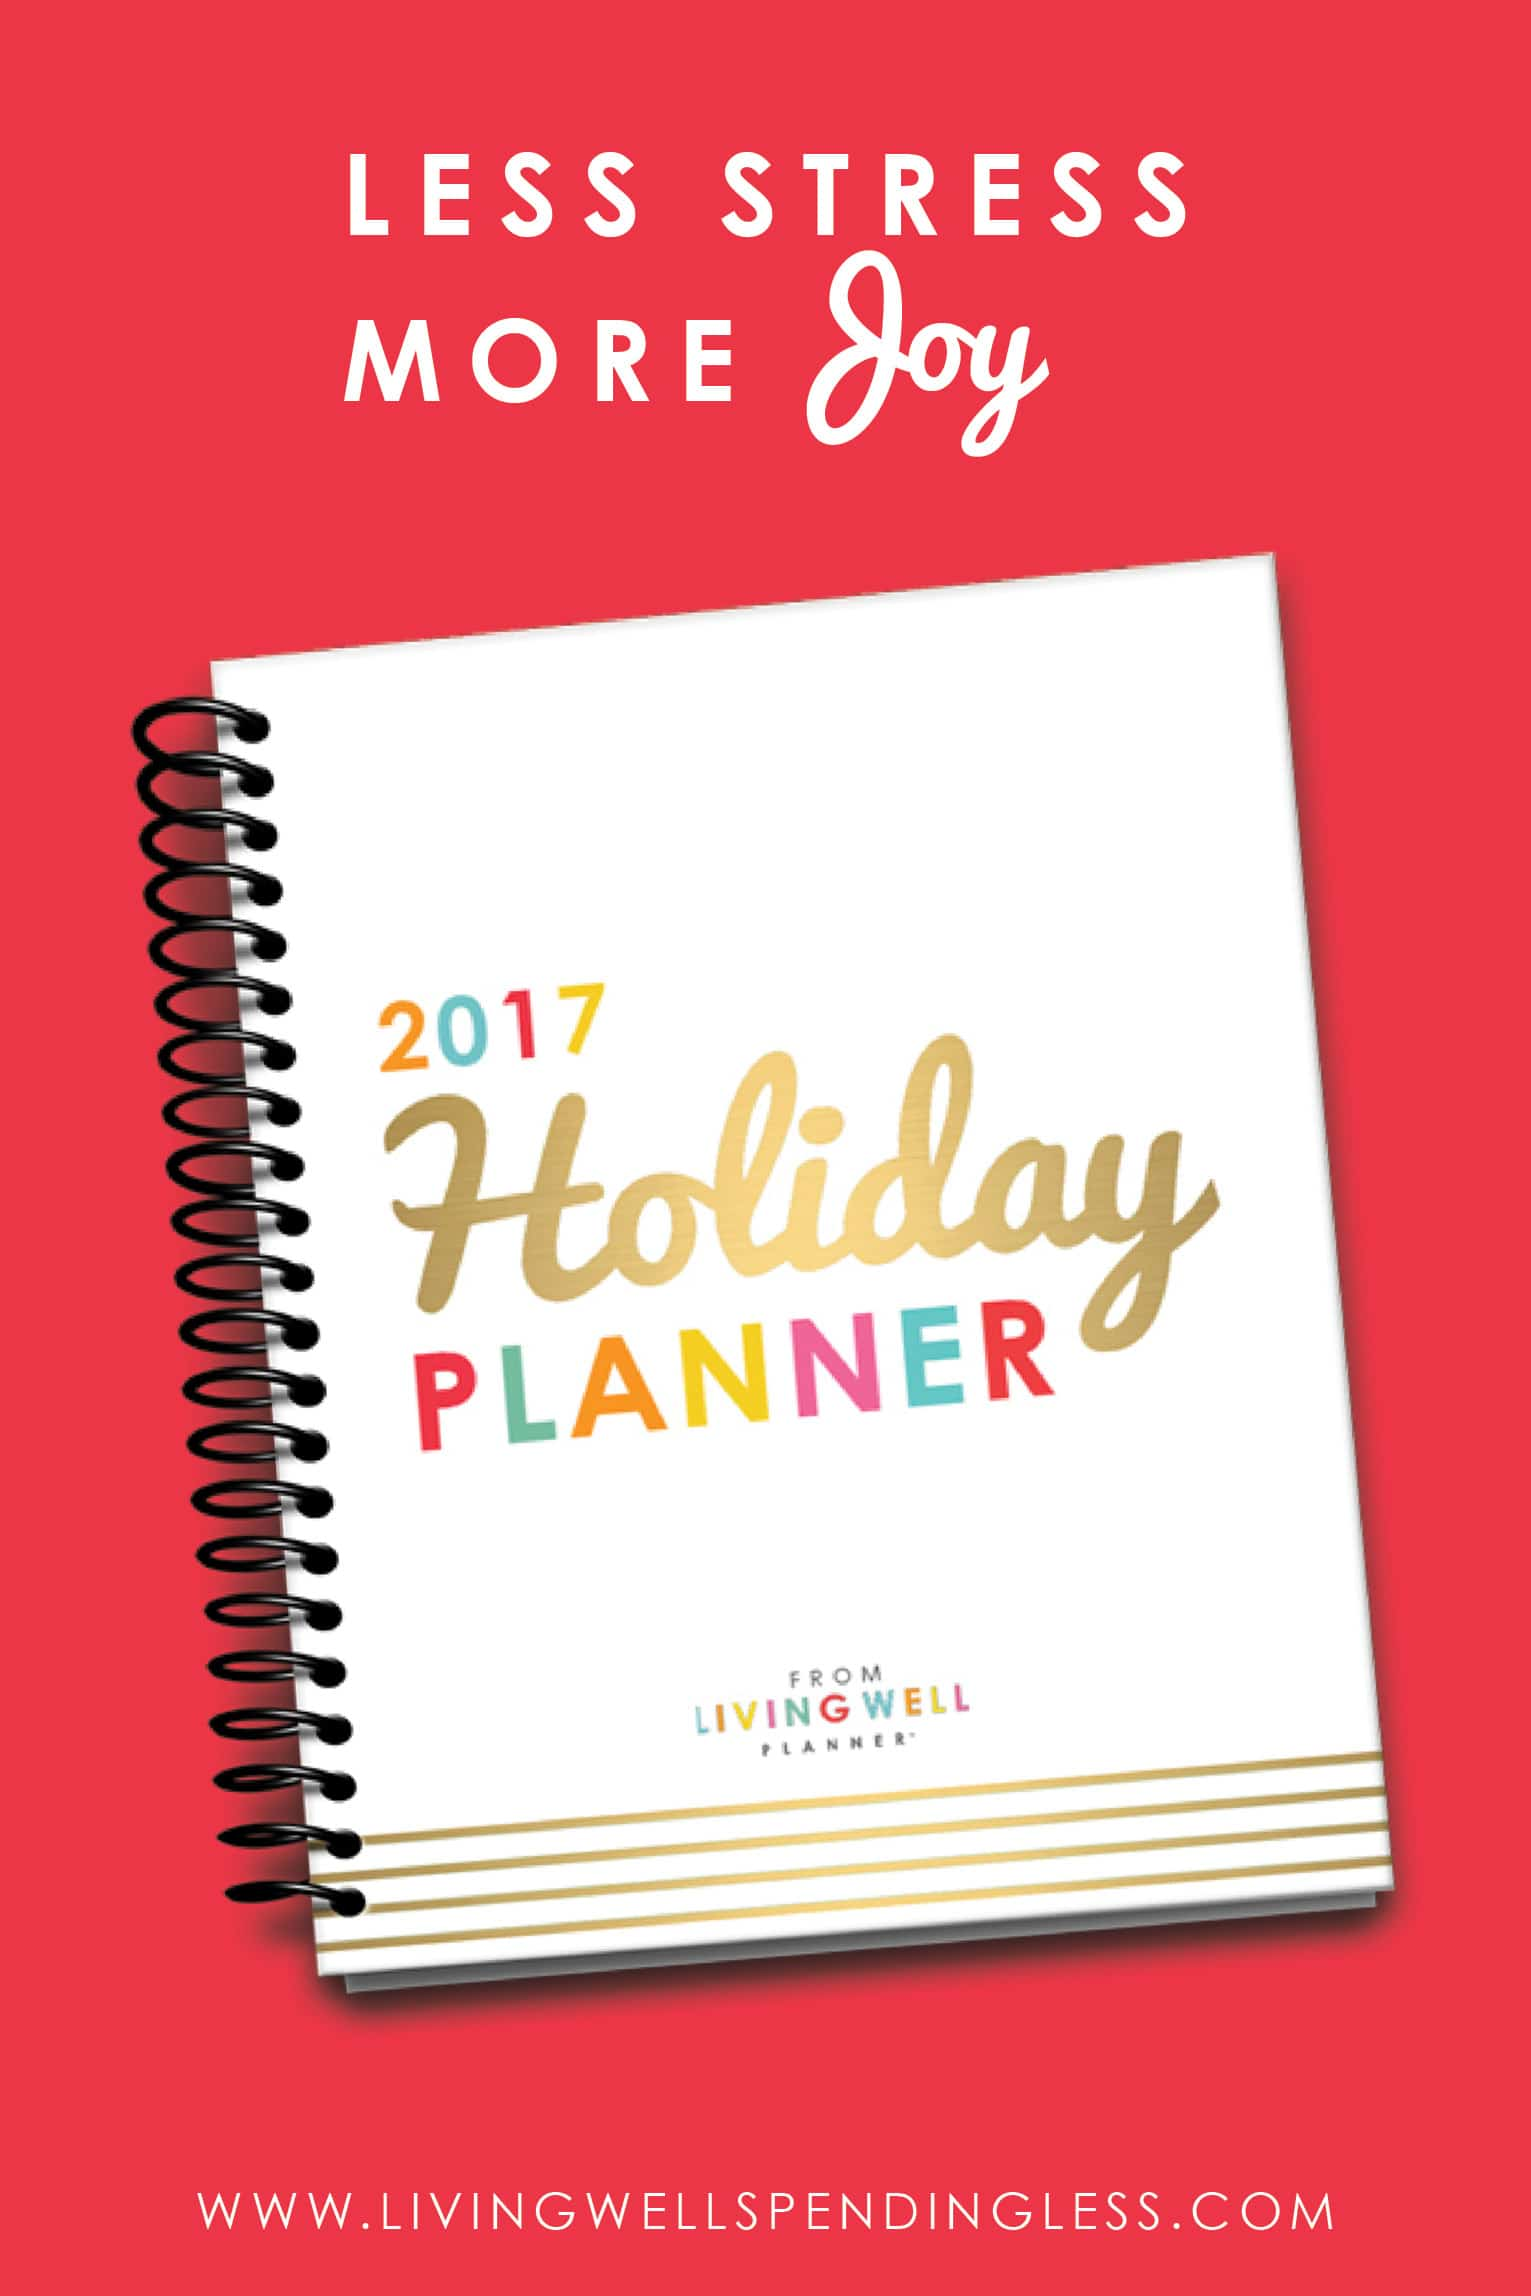 Get The Lwsl Holiday Planner